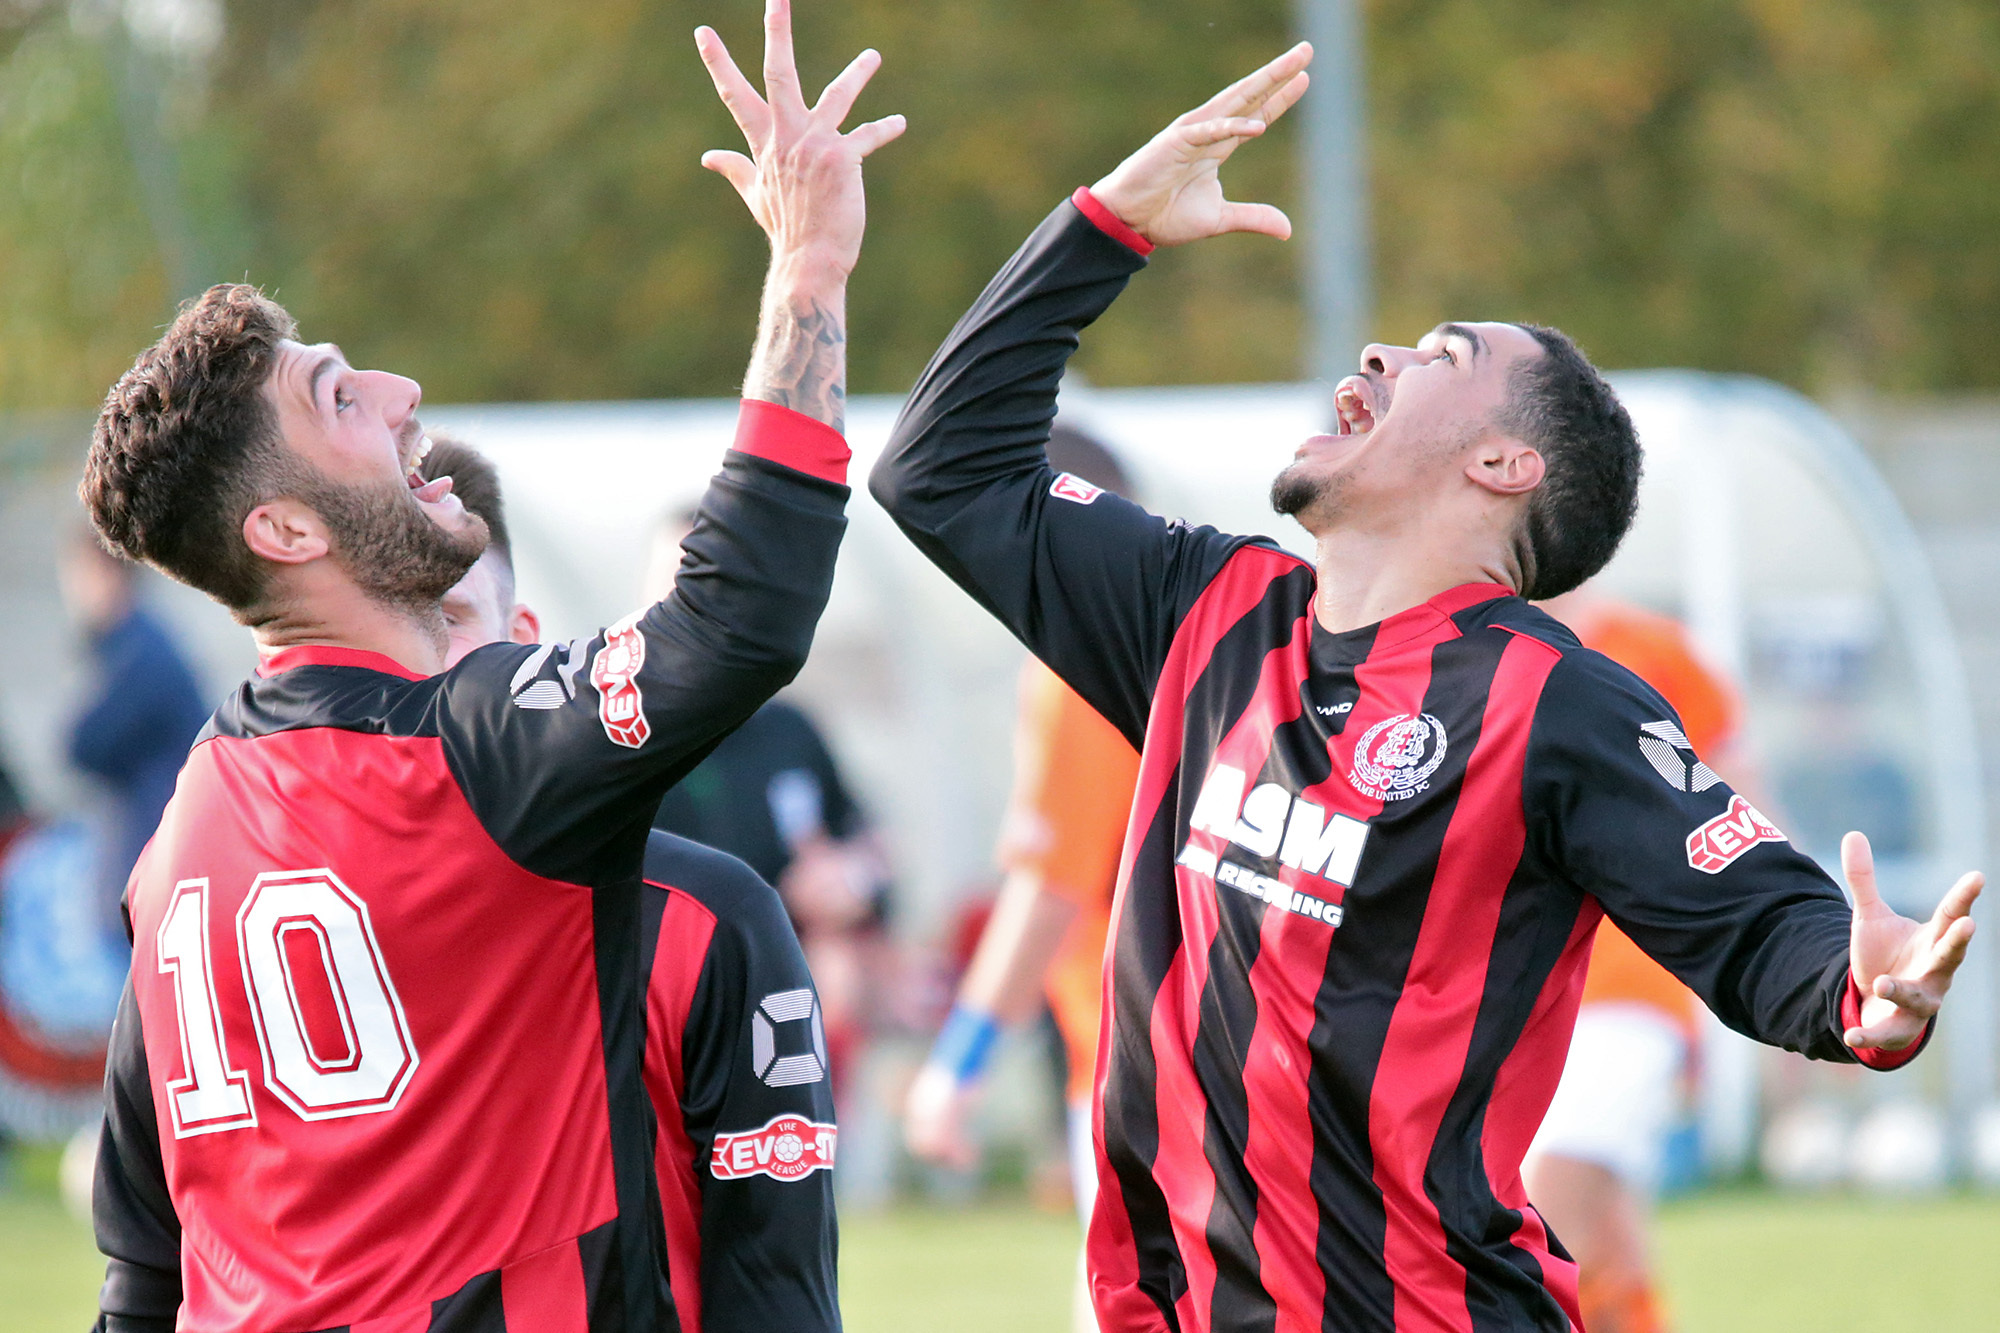 DEADLY DUO: Dan West (left) and Lynton Goss, pictured celebrating a goal earlier this season, have found the net 36 times between them this season Picture: Ric Mellis